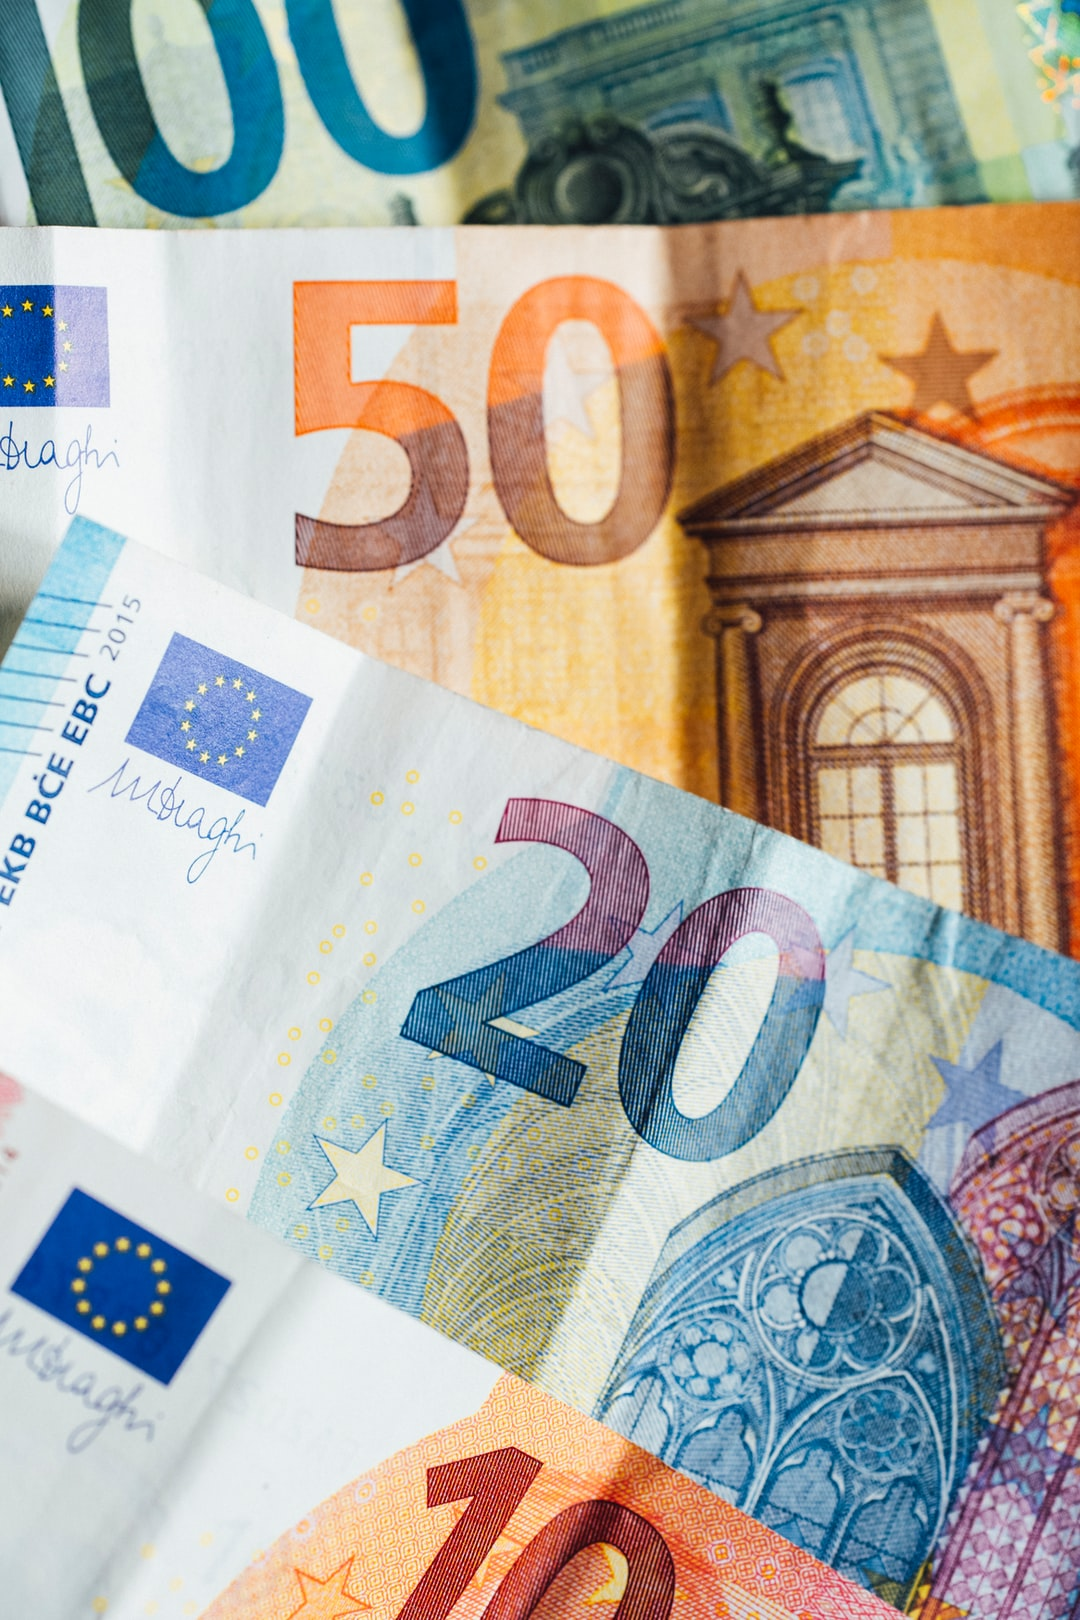 A lot of cash EURO banknote money... € 10,- € 20,- and € 50,-. Made with Canon 5d Mark III and analog vintage lens, Leica APO Macro Elmarit-R 2.8 100mm (Year: 1993)